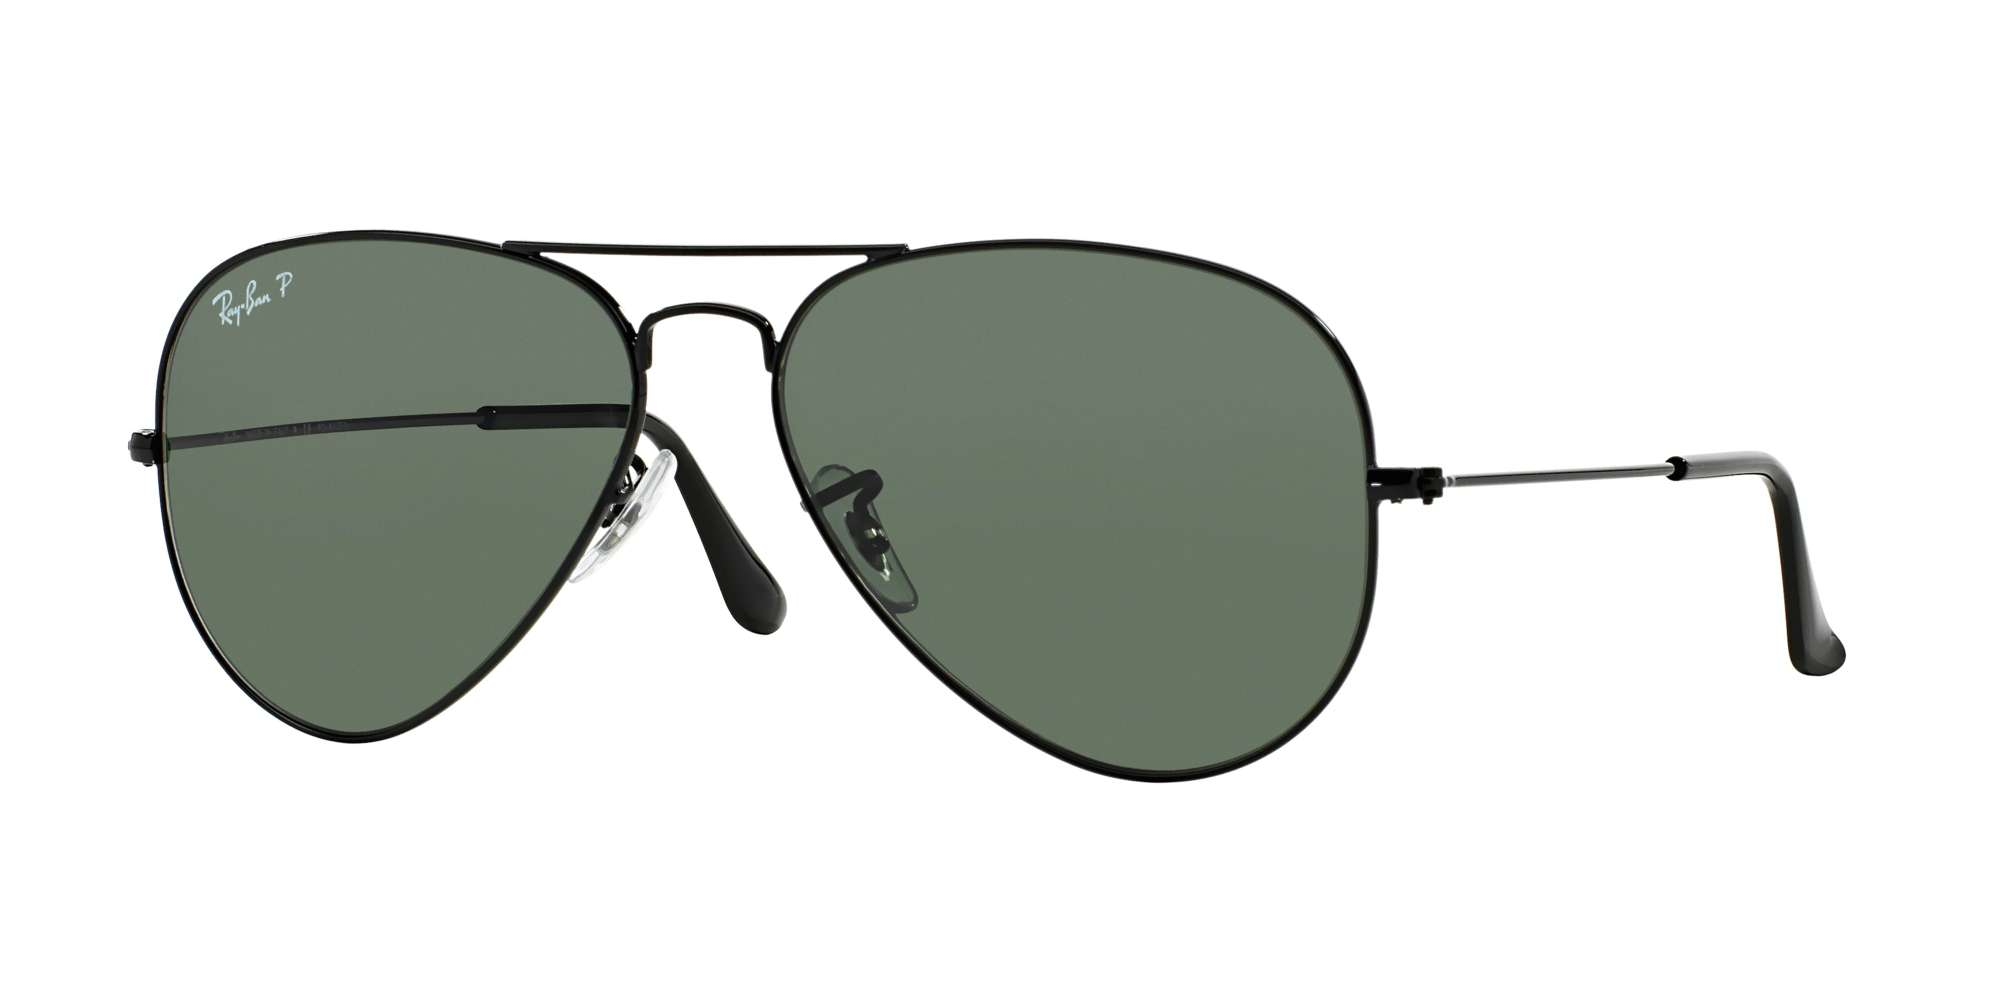 BLACK / CRYSTAL GREEN POLARIZED lenses